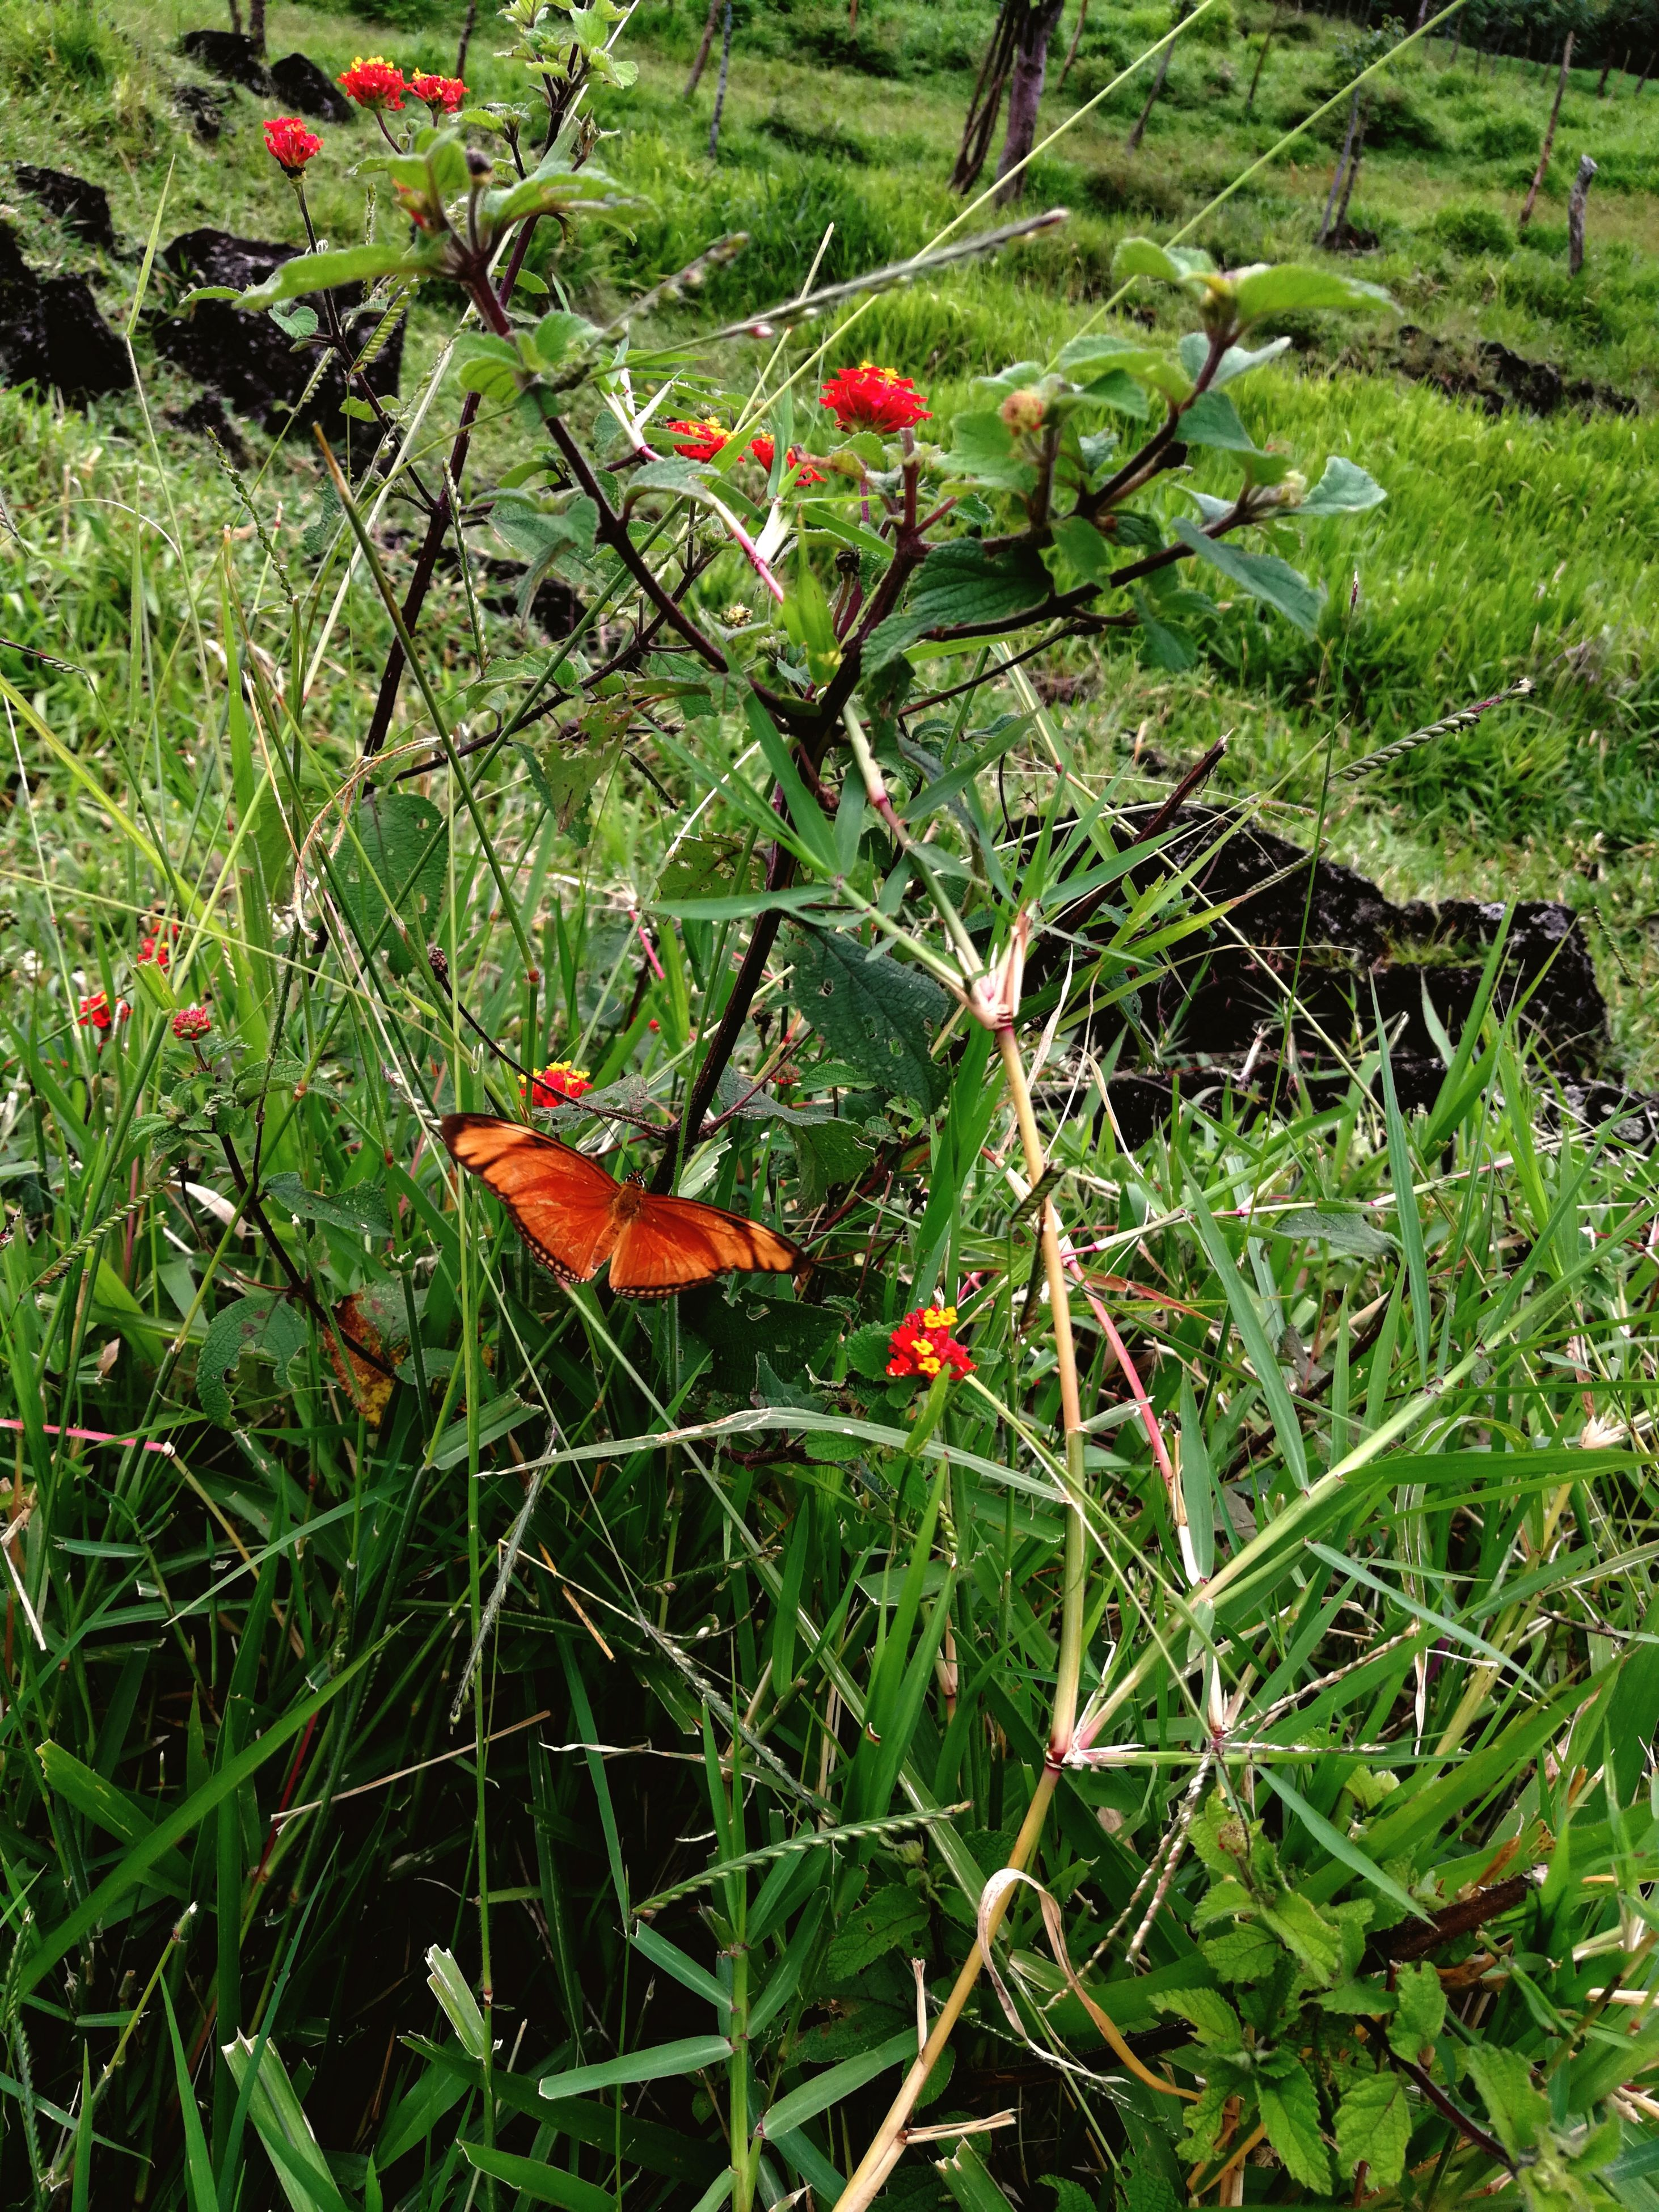 growth, grass, nature, green color, red, outdoors, leaf, no people, field, day, plant, beauty in nature, close-up, freshness